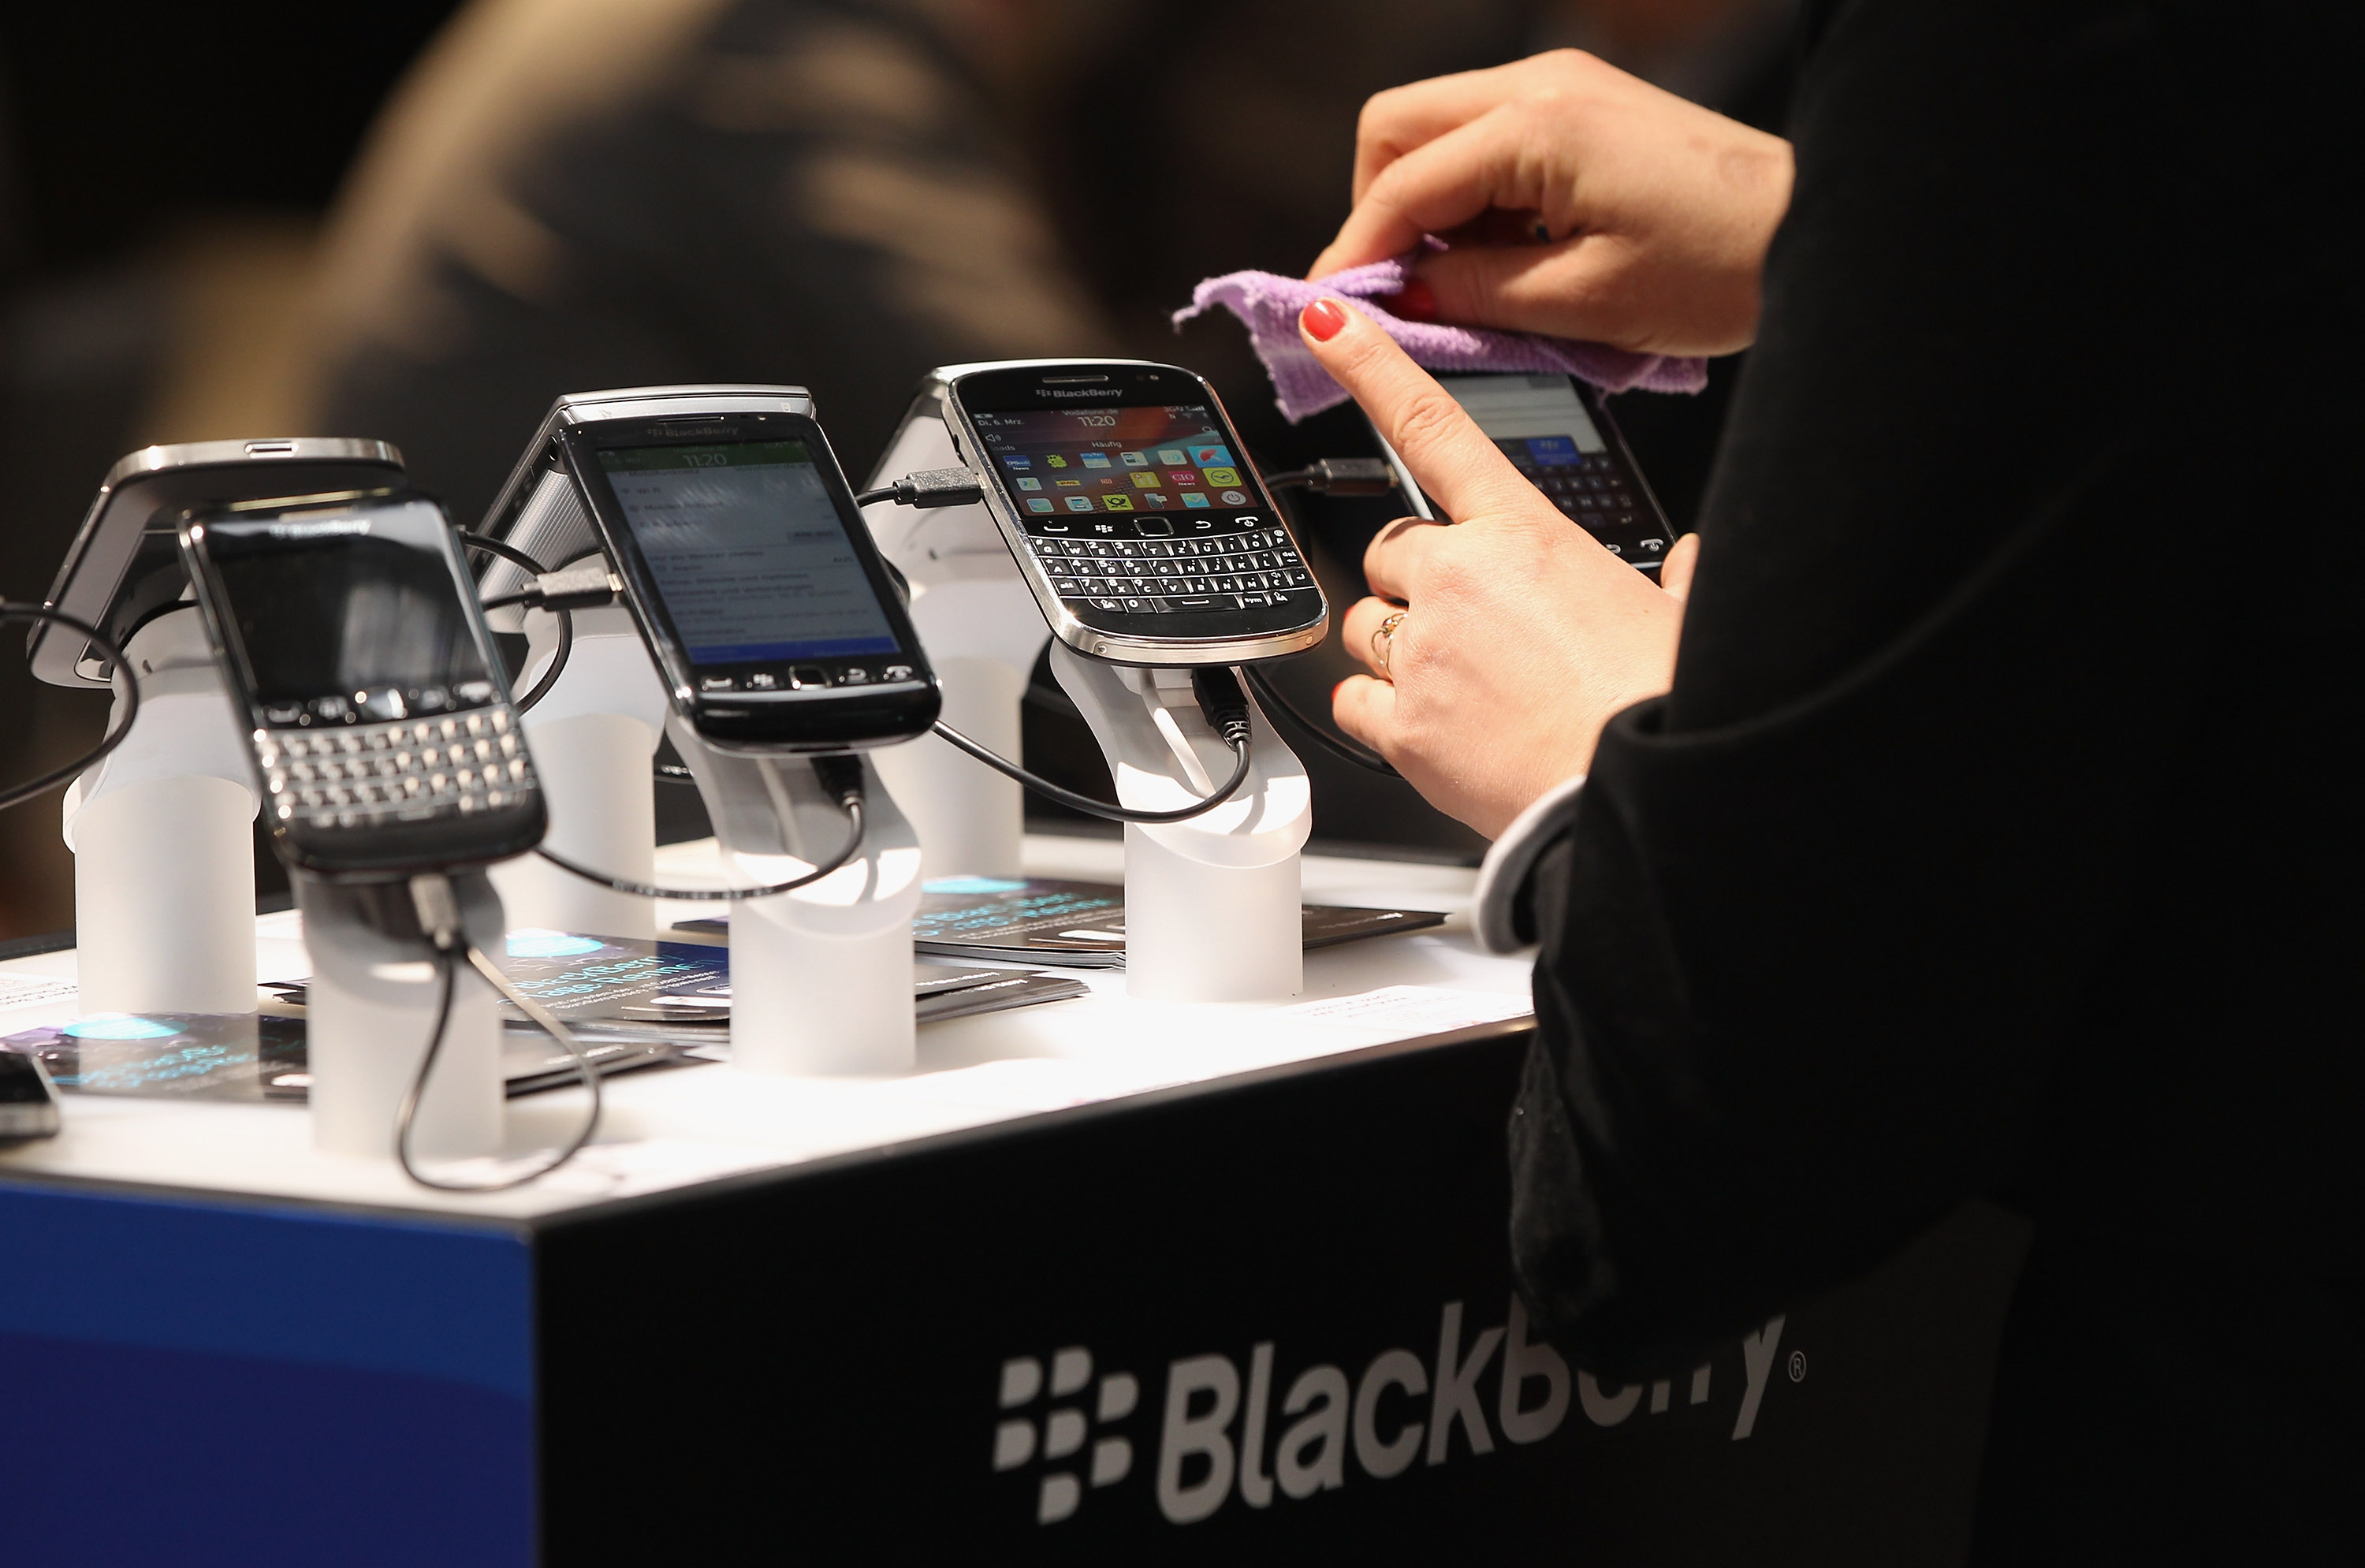 Visitors try out Blackberry smartphones at the Blackberry stand on the first day of the CeBIT 2012 technology trade fair on March 6, 2012 in Hanover, Germany.